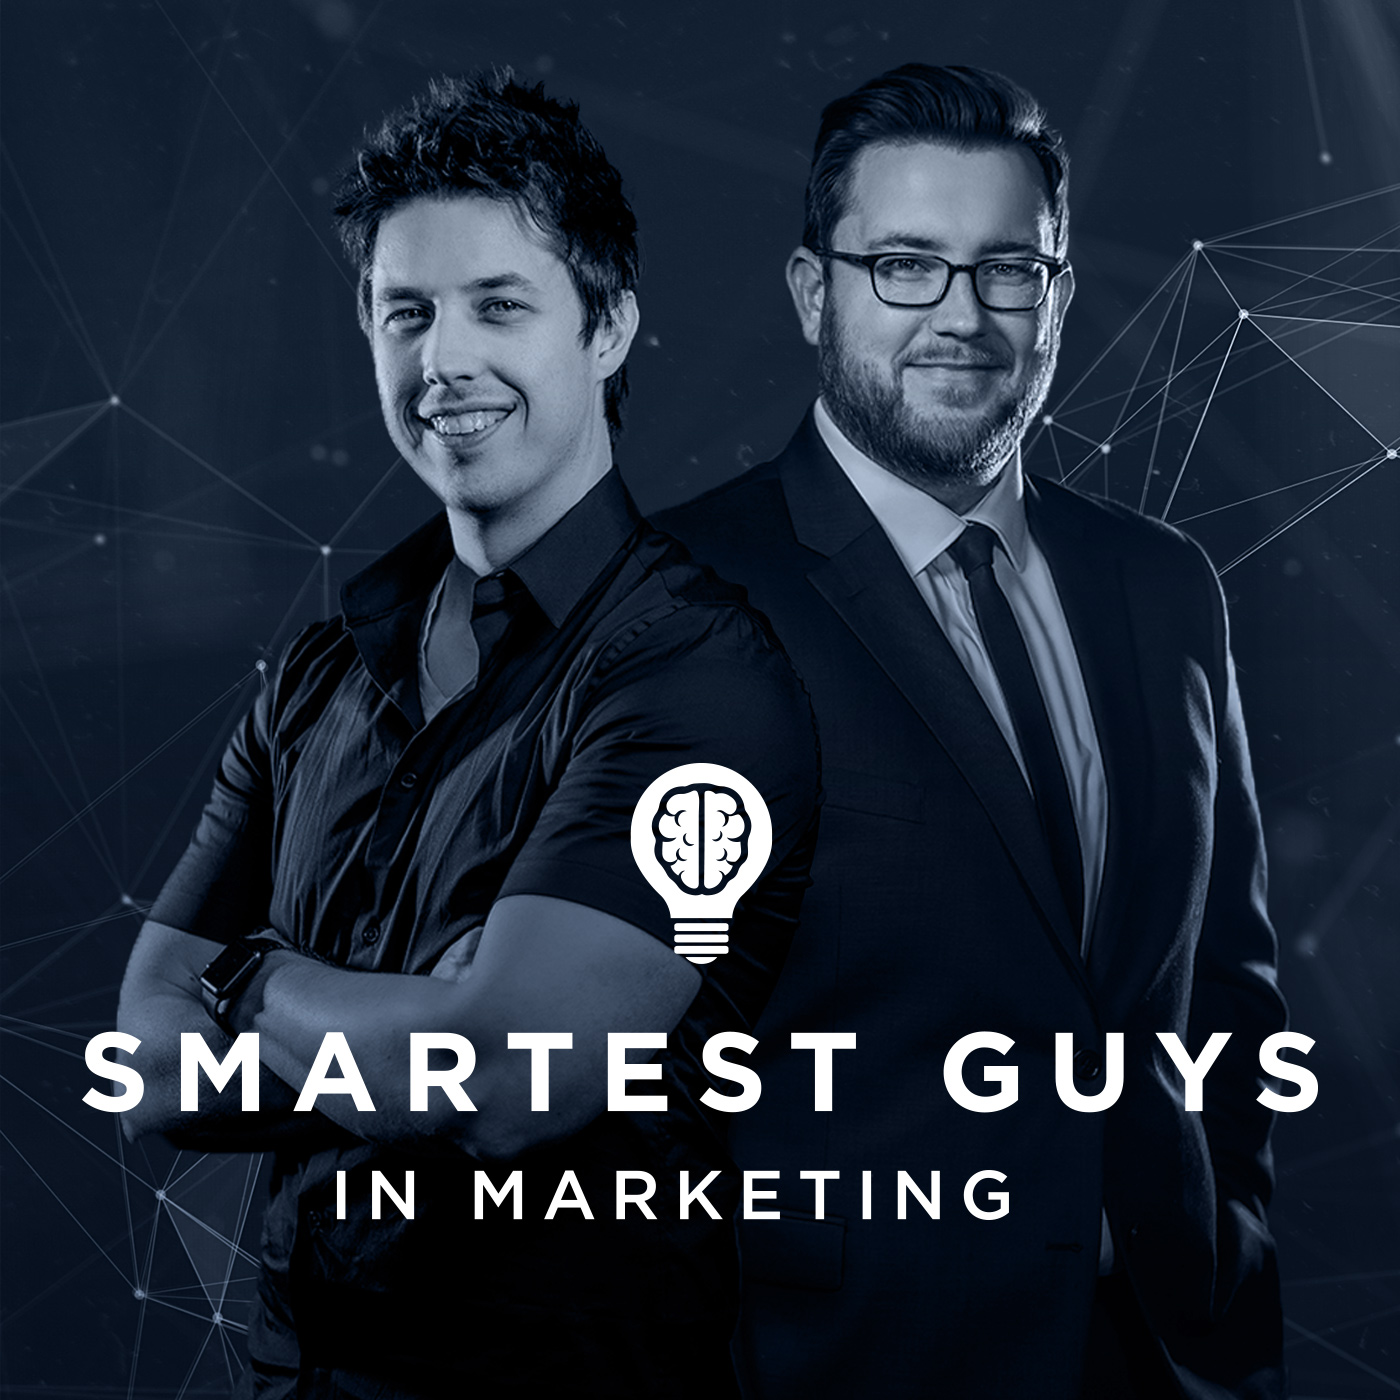 Smartest Guys in Marketing